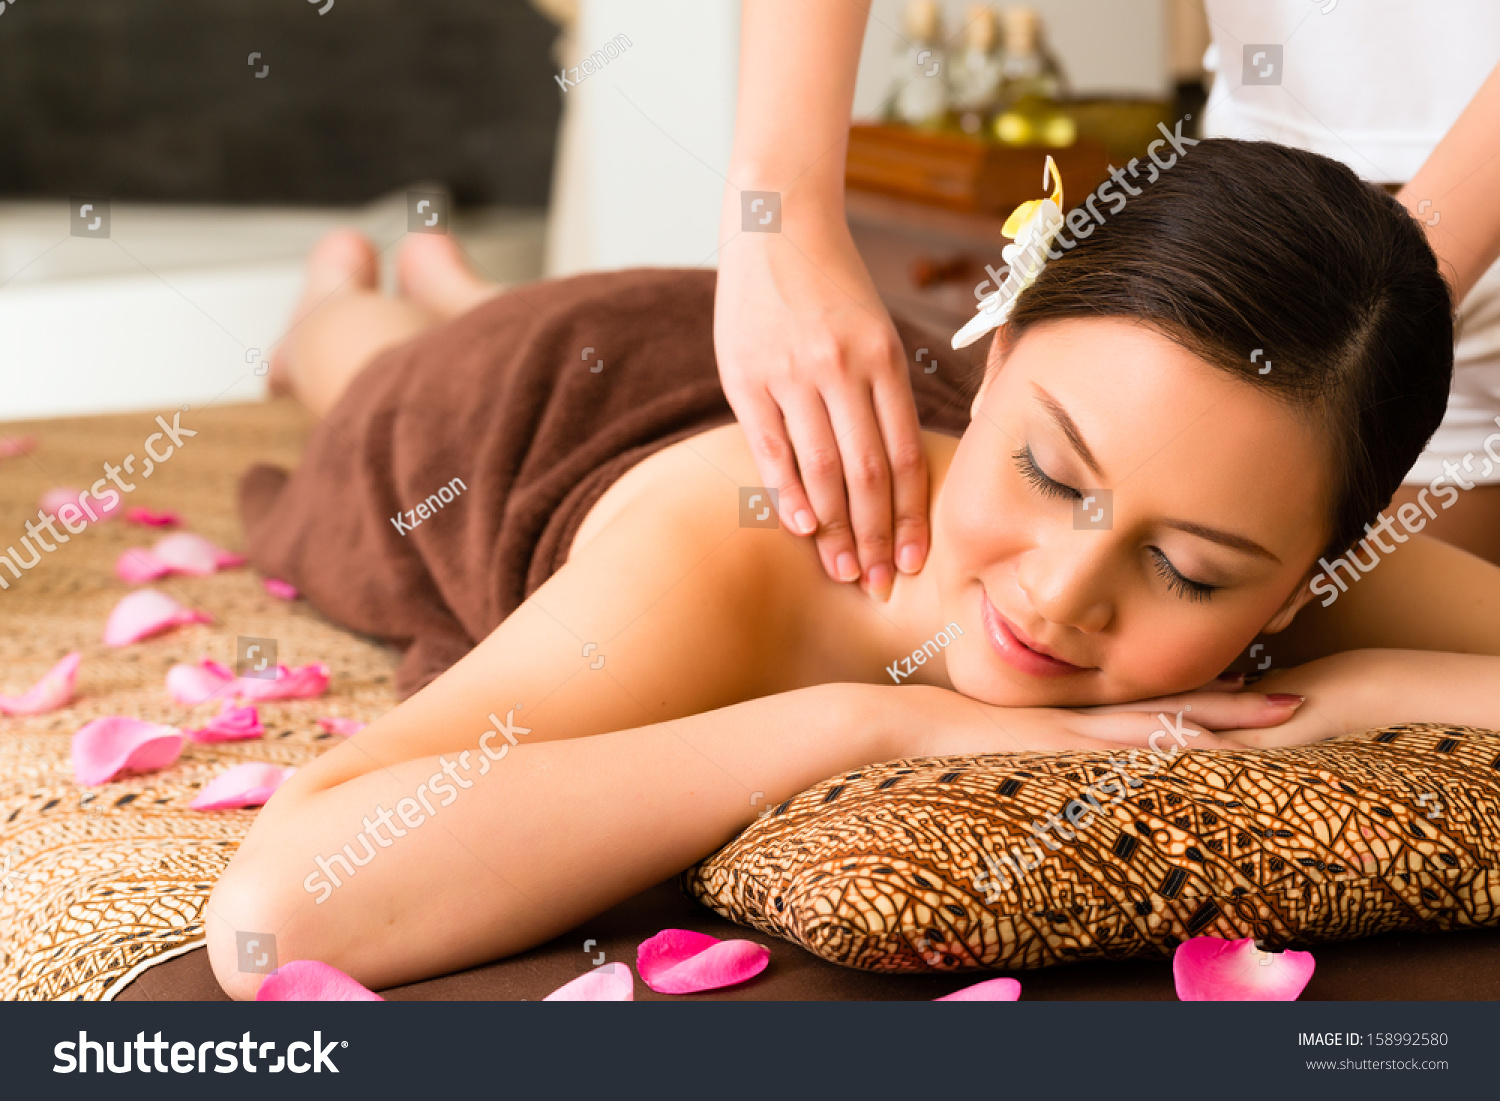 thaimassage stockholm he mali thai massage